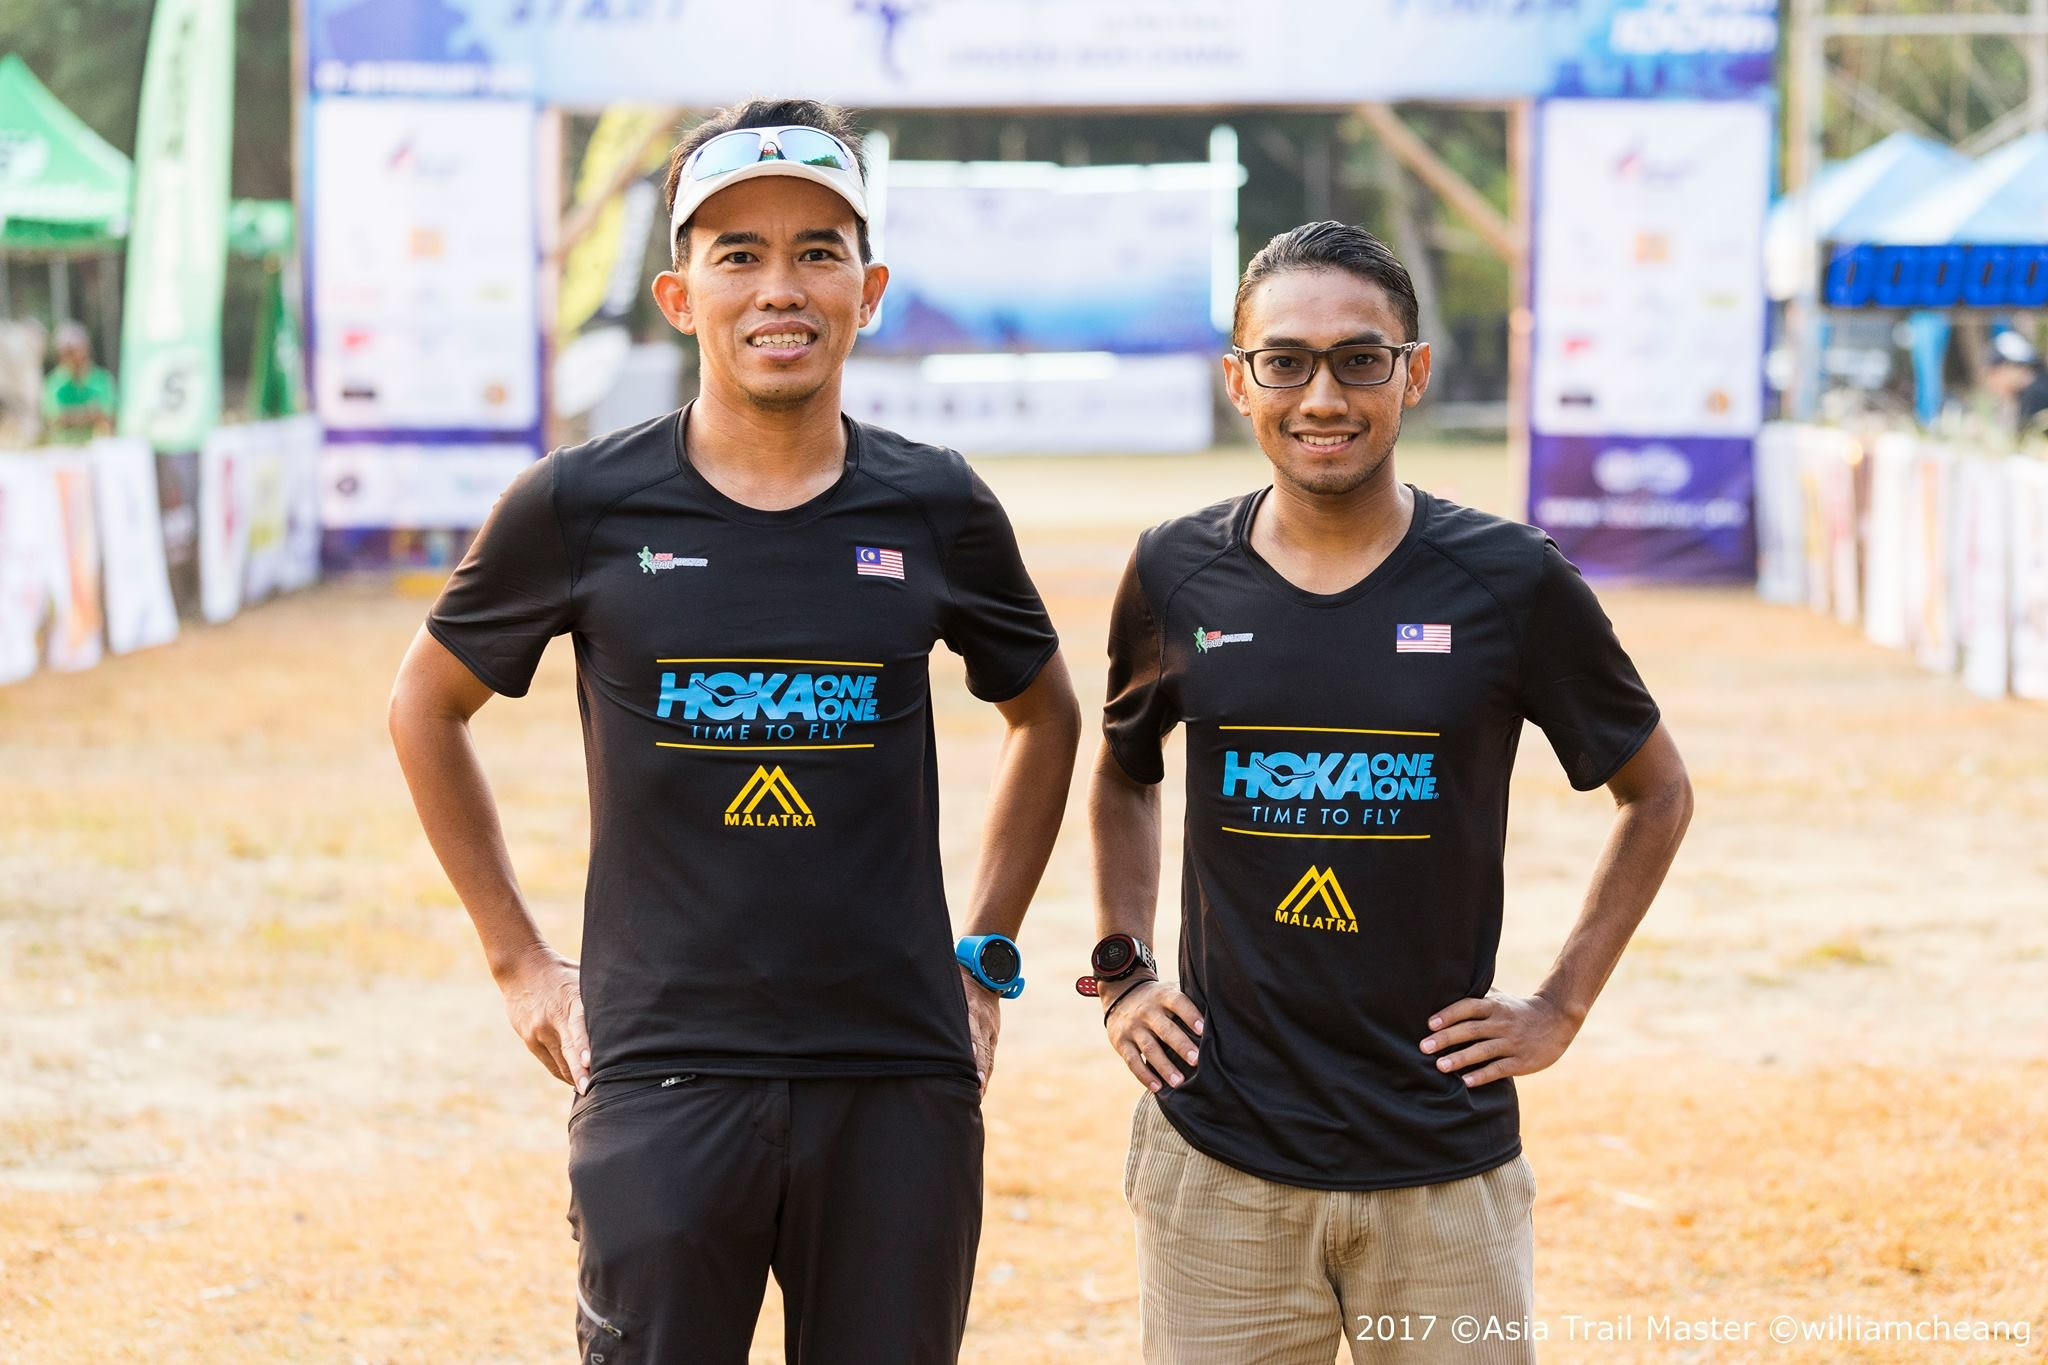 Huzairi Shah (right) with his coach at Team Malatra,  Razif Yahya